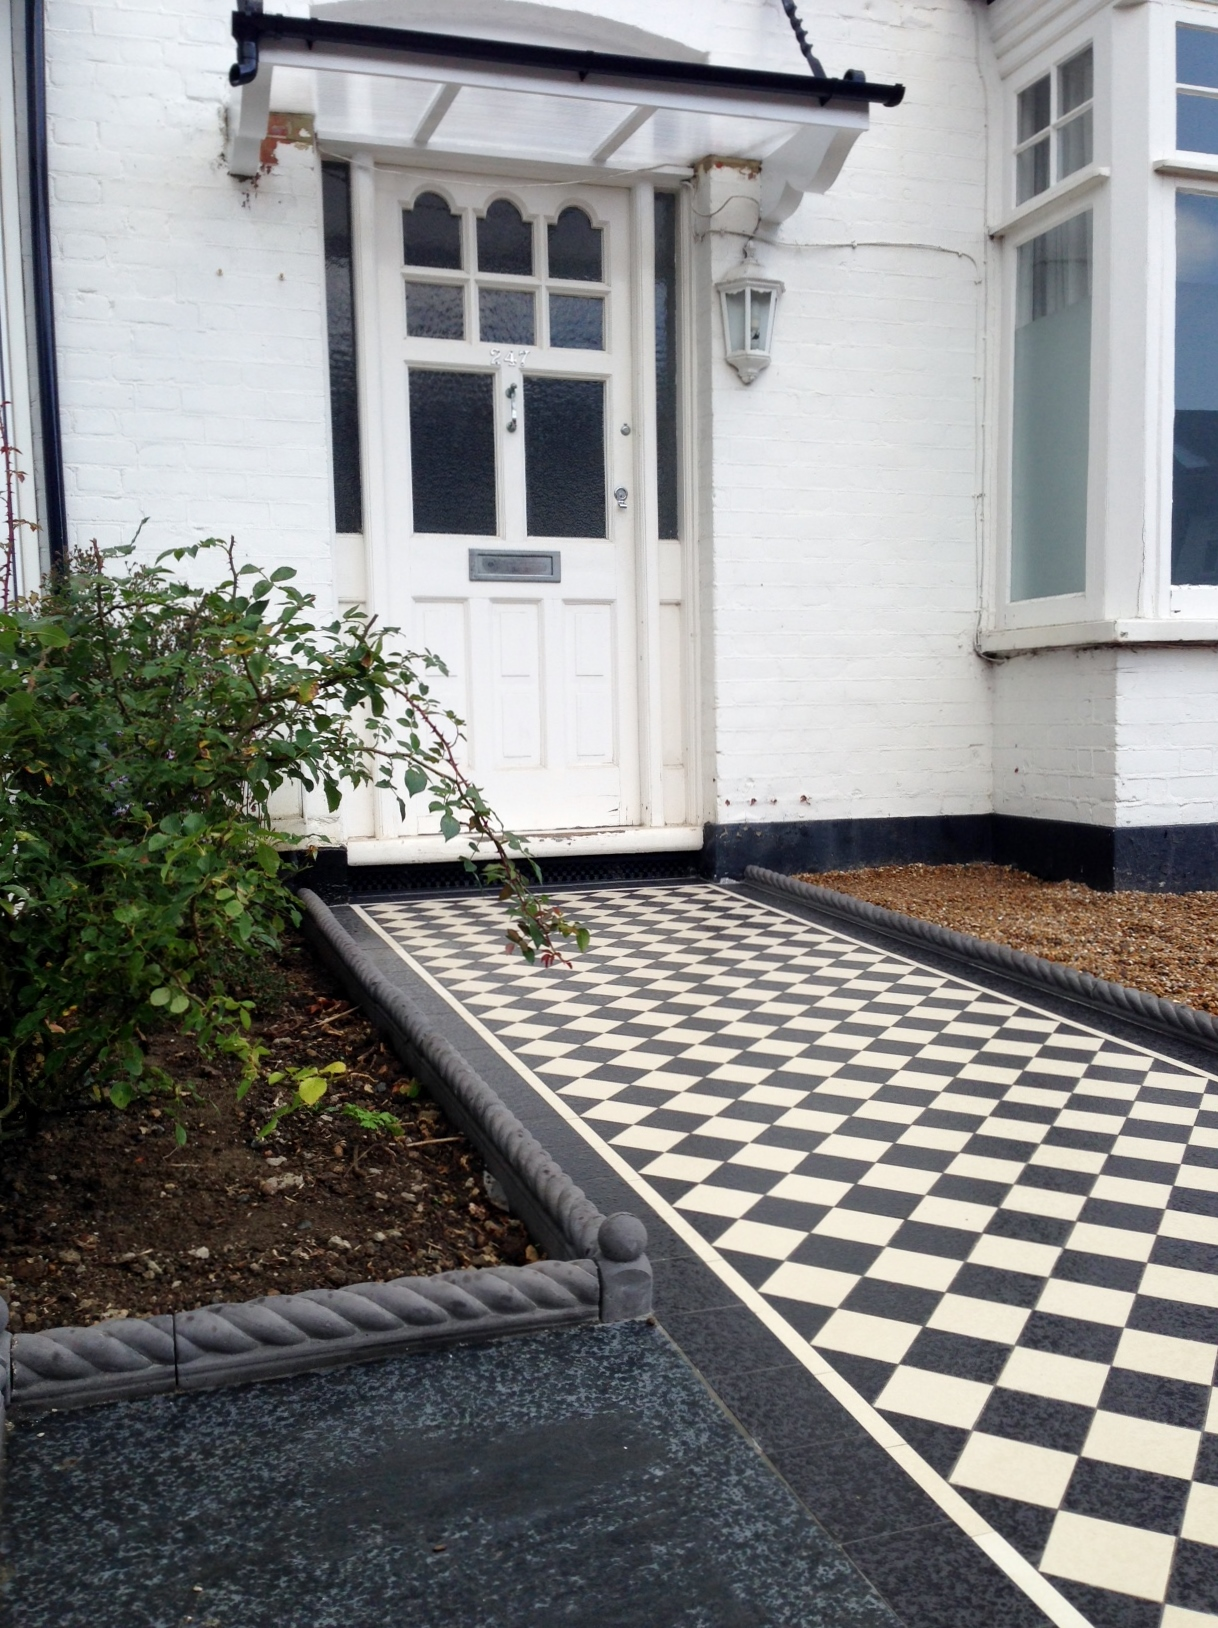 Victorian black and white mosaic tile garden path rope edge tile brockley lea catford london (3)